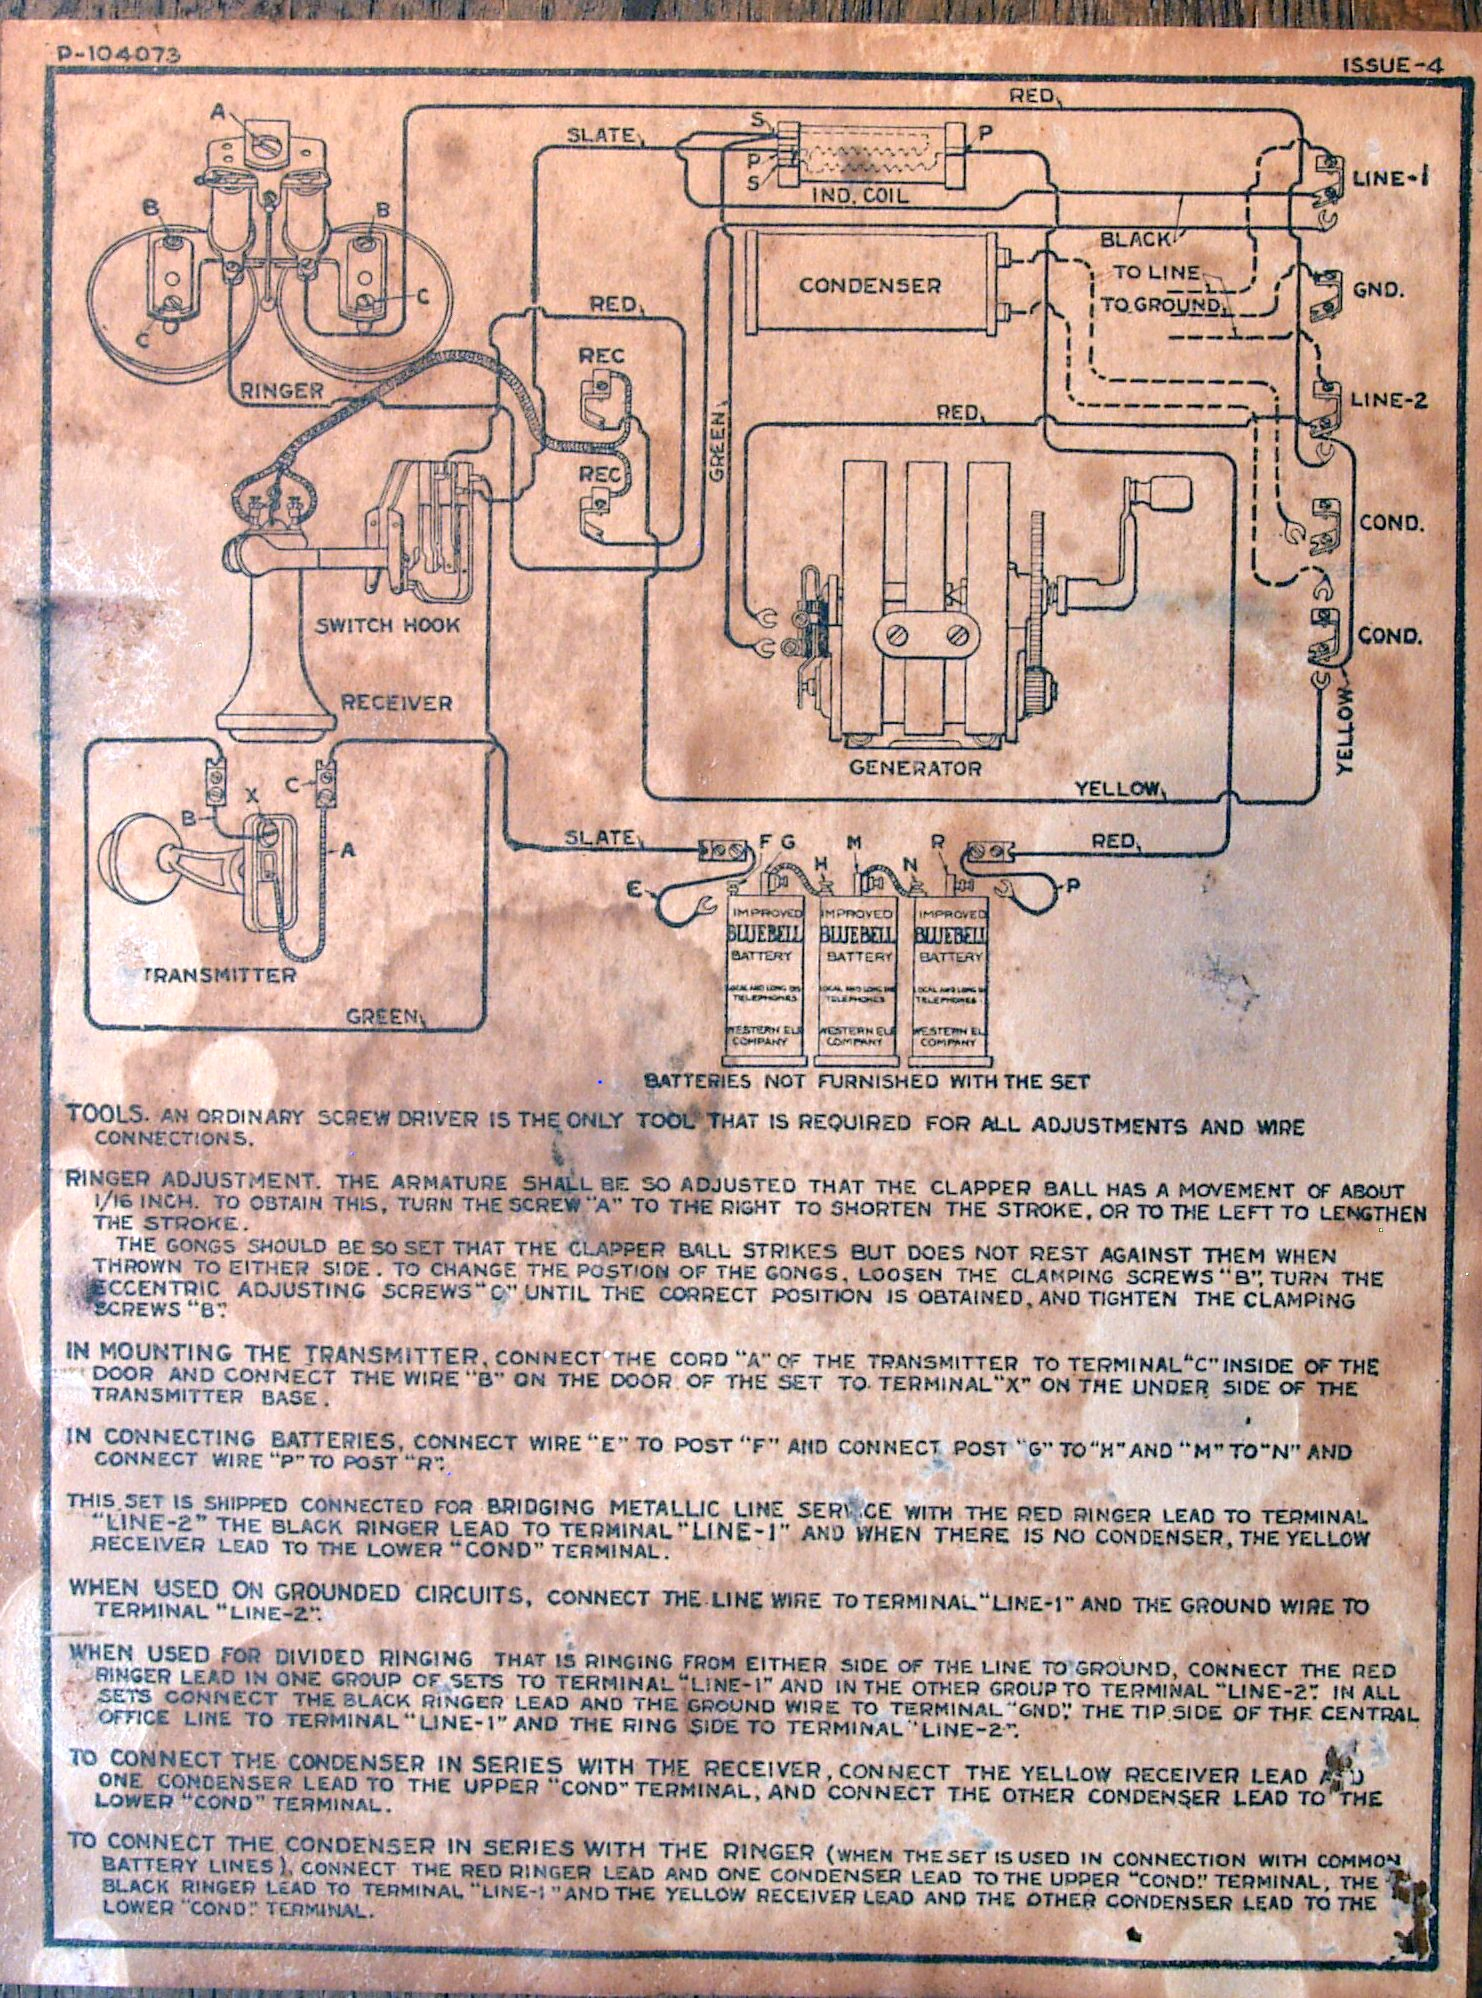 WE_Wall_Phone_Schematic antique telephones crank telephone wiring diagrams at gsmx.co